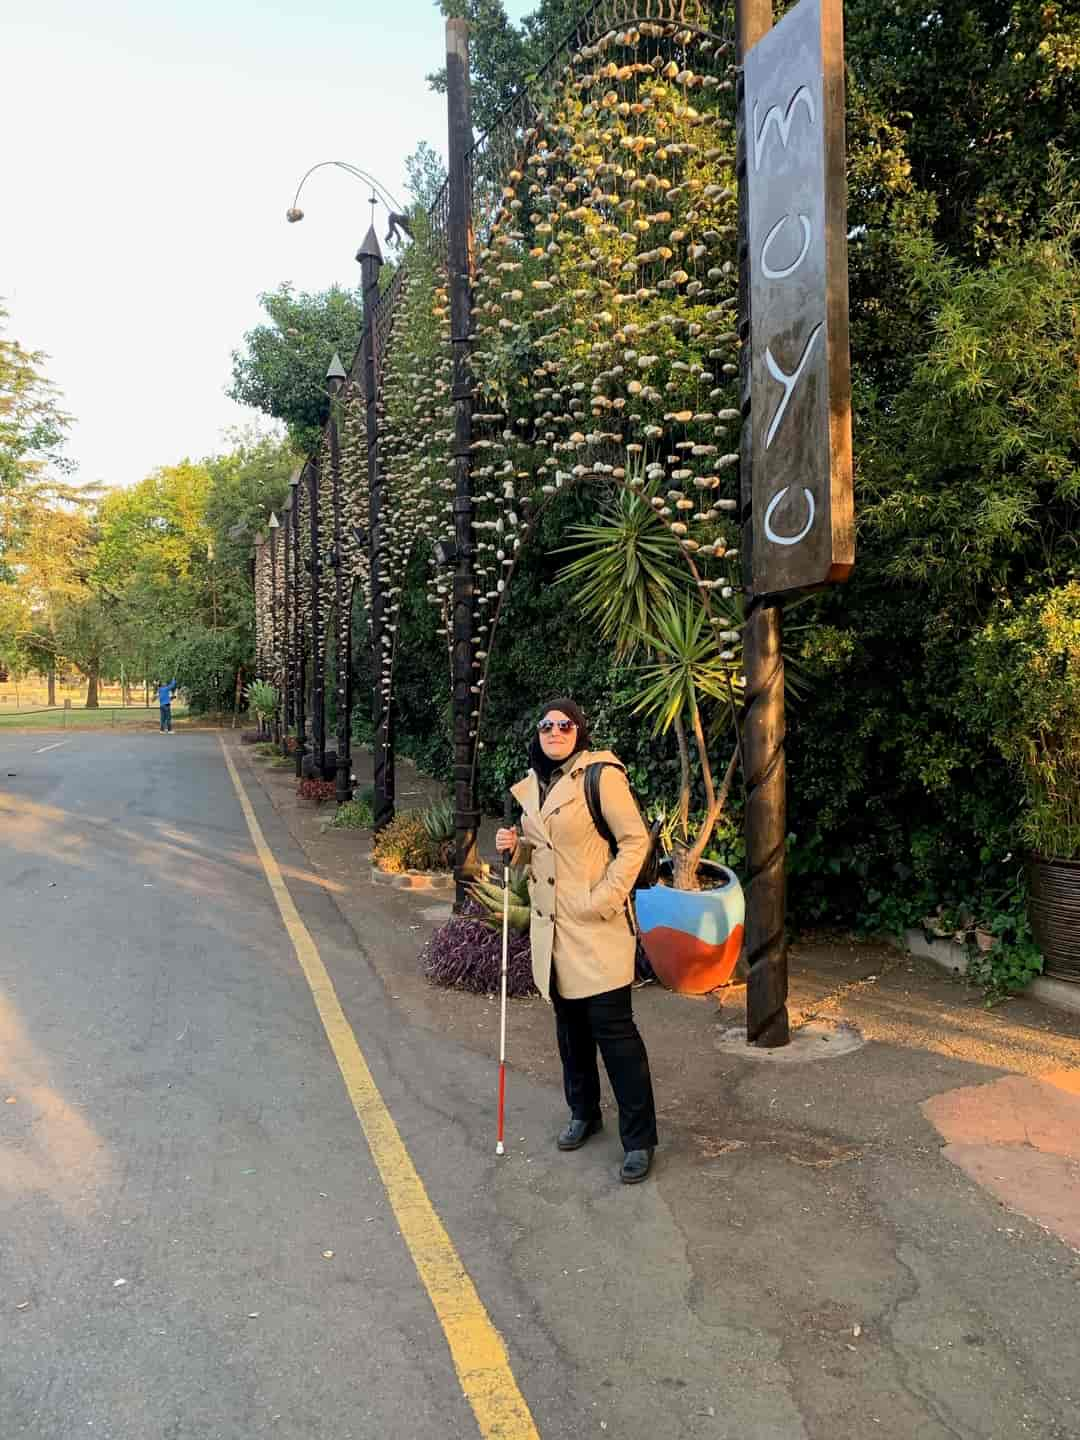 "Mona stands on the side of a road. She wears a tan jacket, black pants, sunglasses, and holds her cane. Behind her is a sign that reads ""Moyo"" and various trees and foliage. Before her is an empty asphalt street."